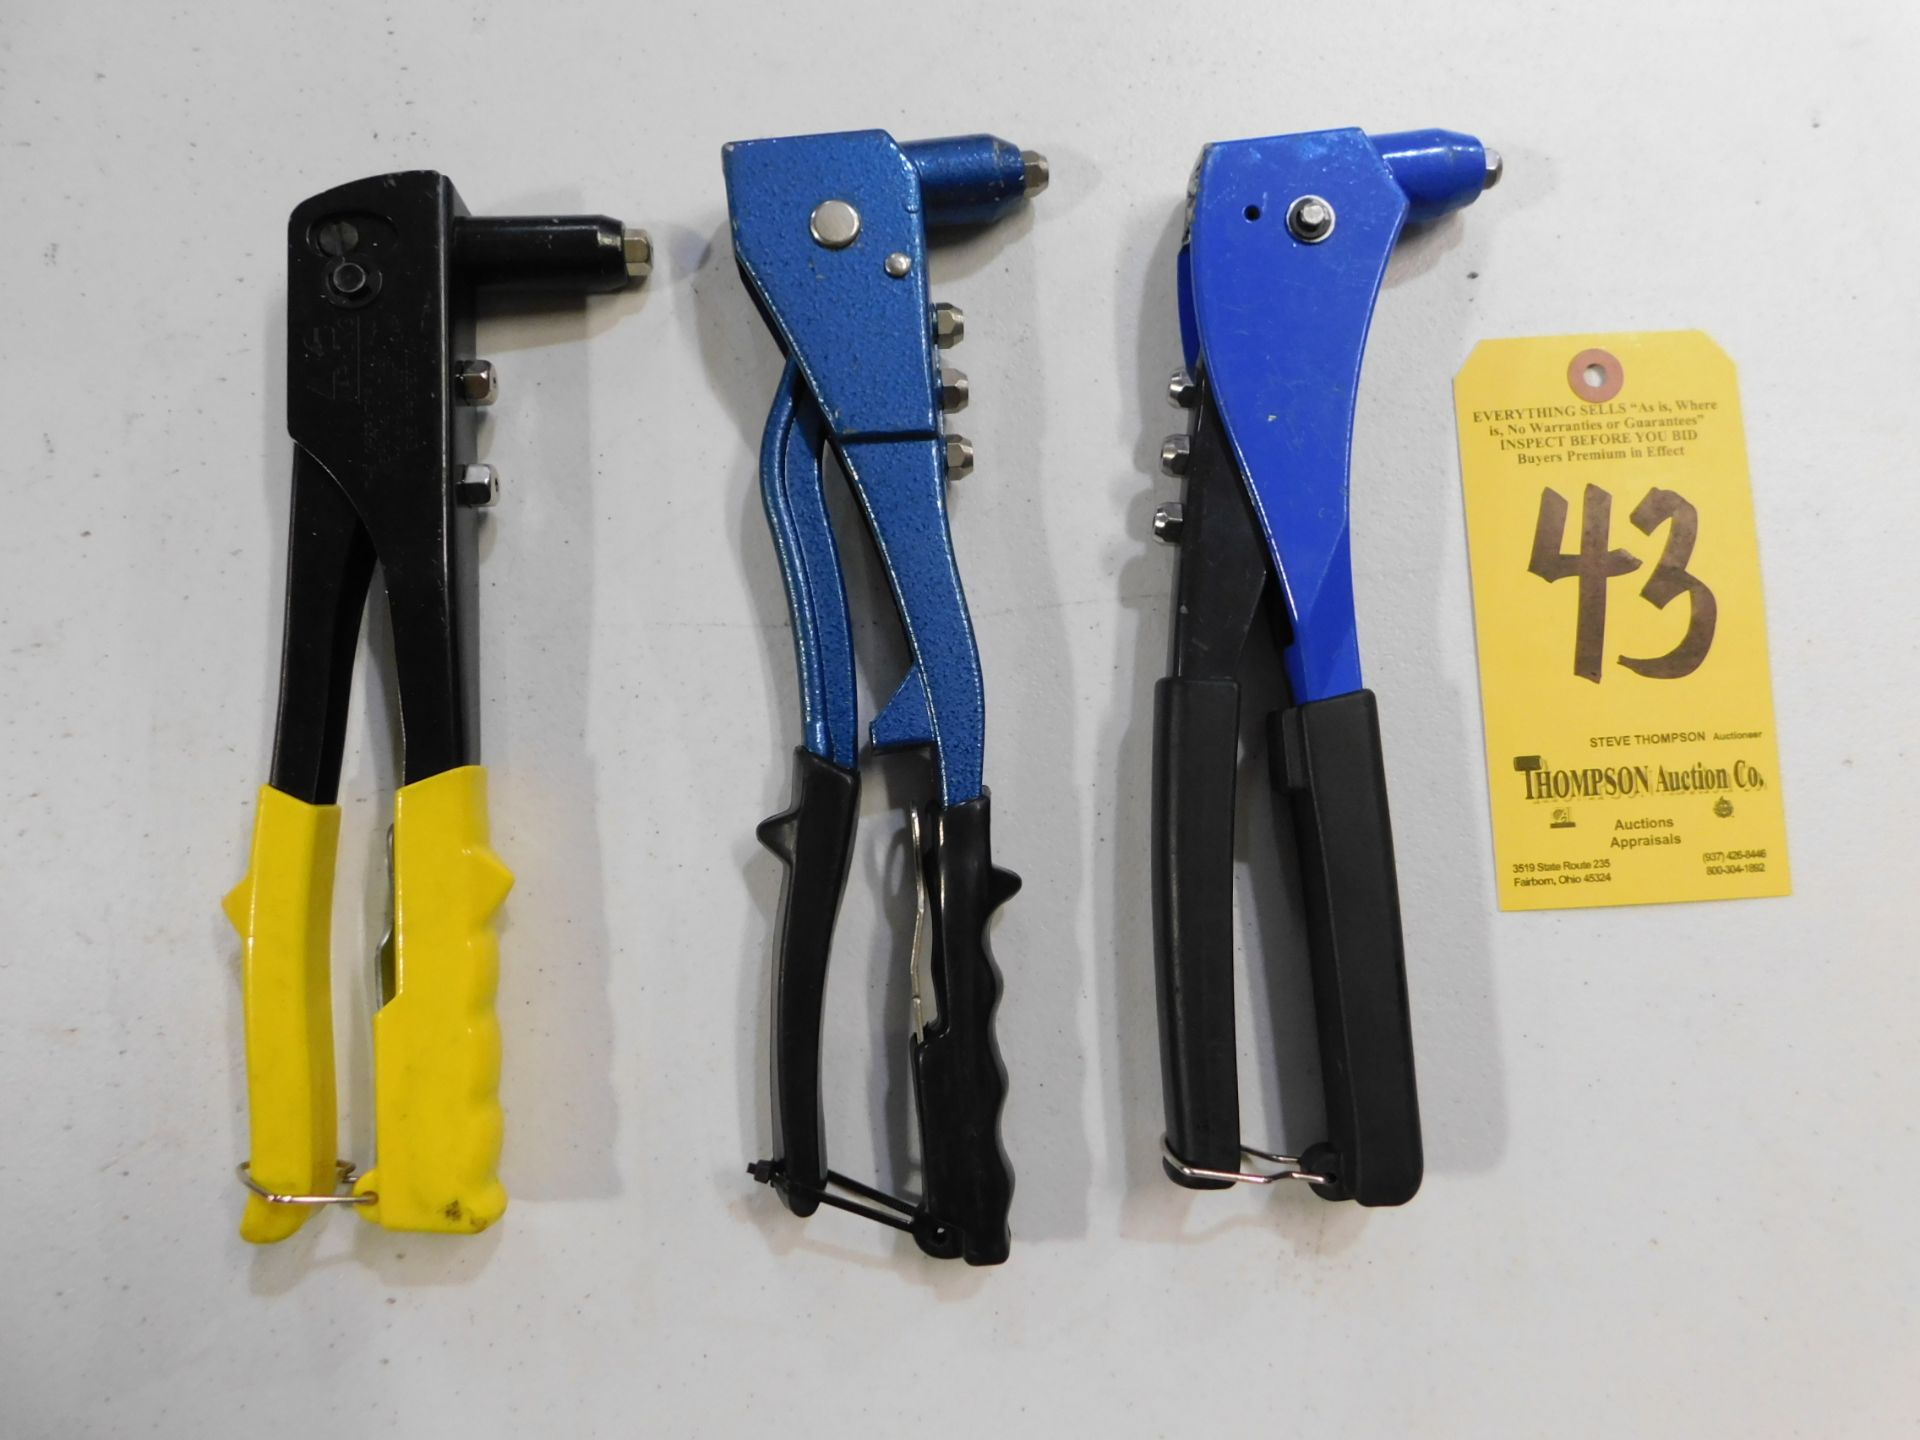 Lot 43 - Pop Rivet Tools, Lot Location 3204 Olympia Dr. A, Lafayette, IN 47909